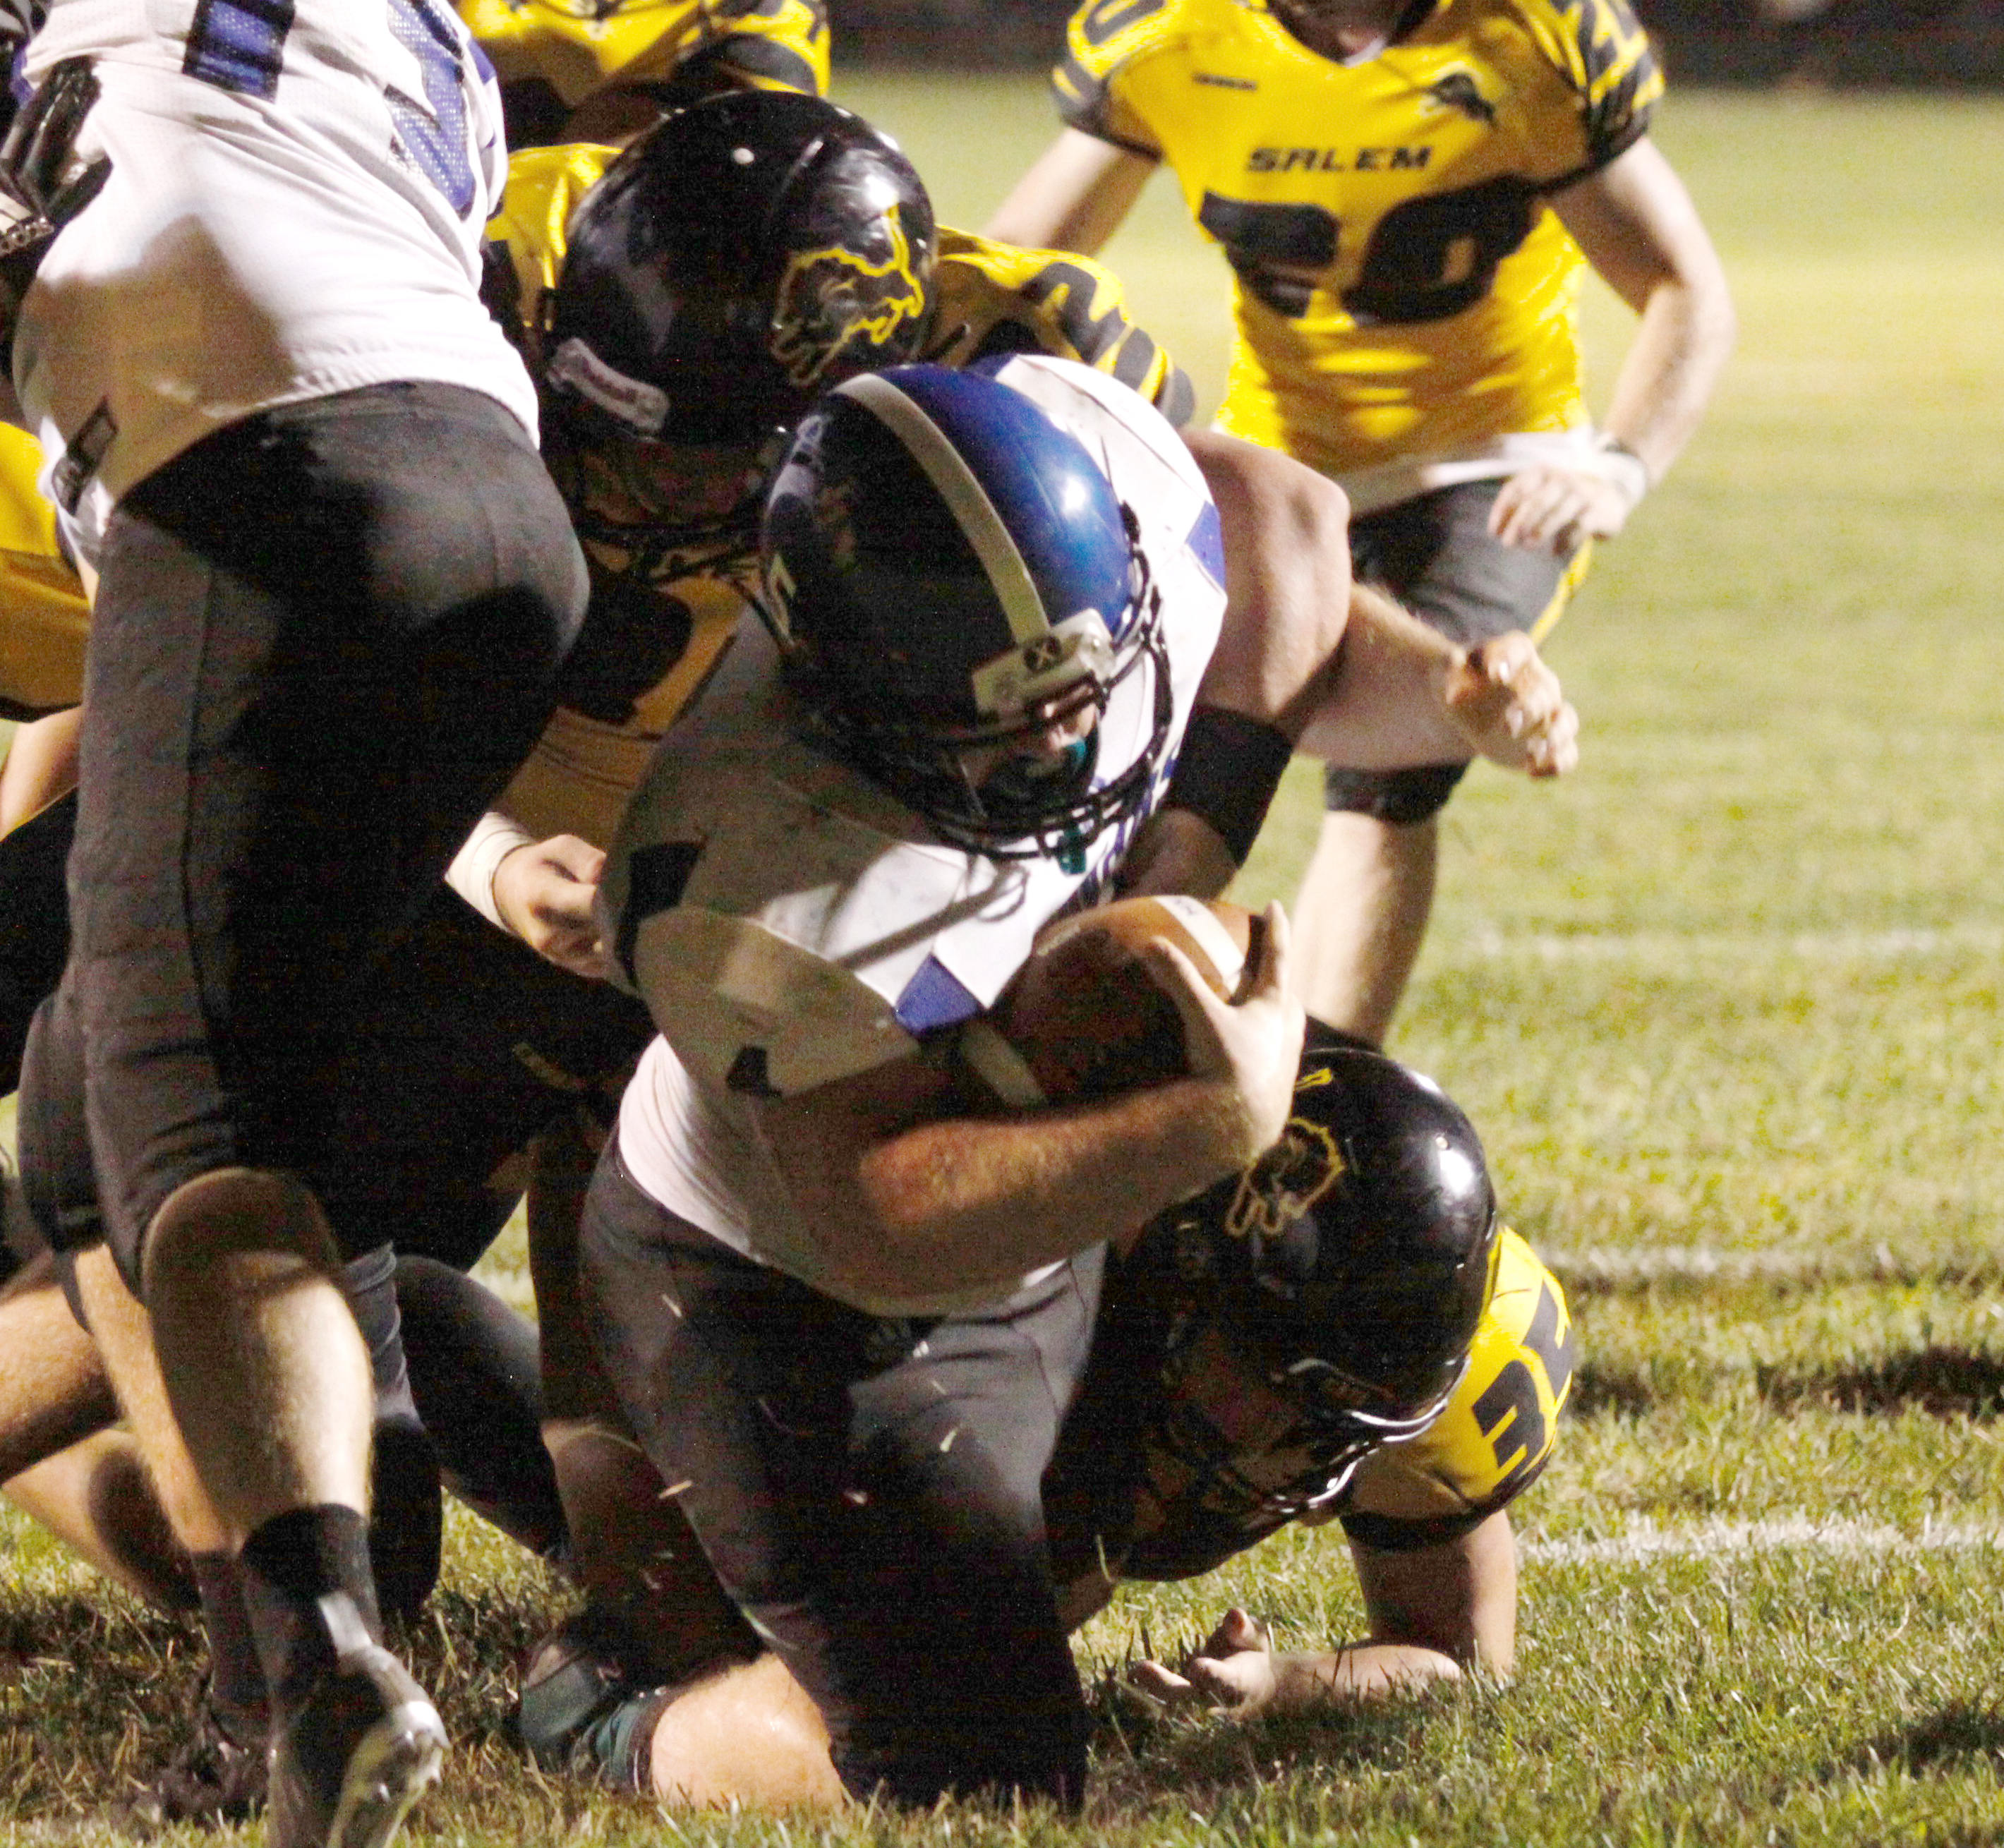 Cougars outclaw Salem in OT